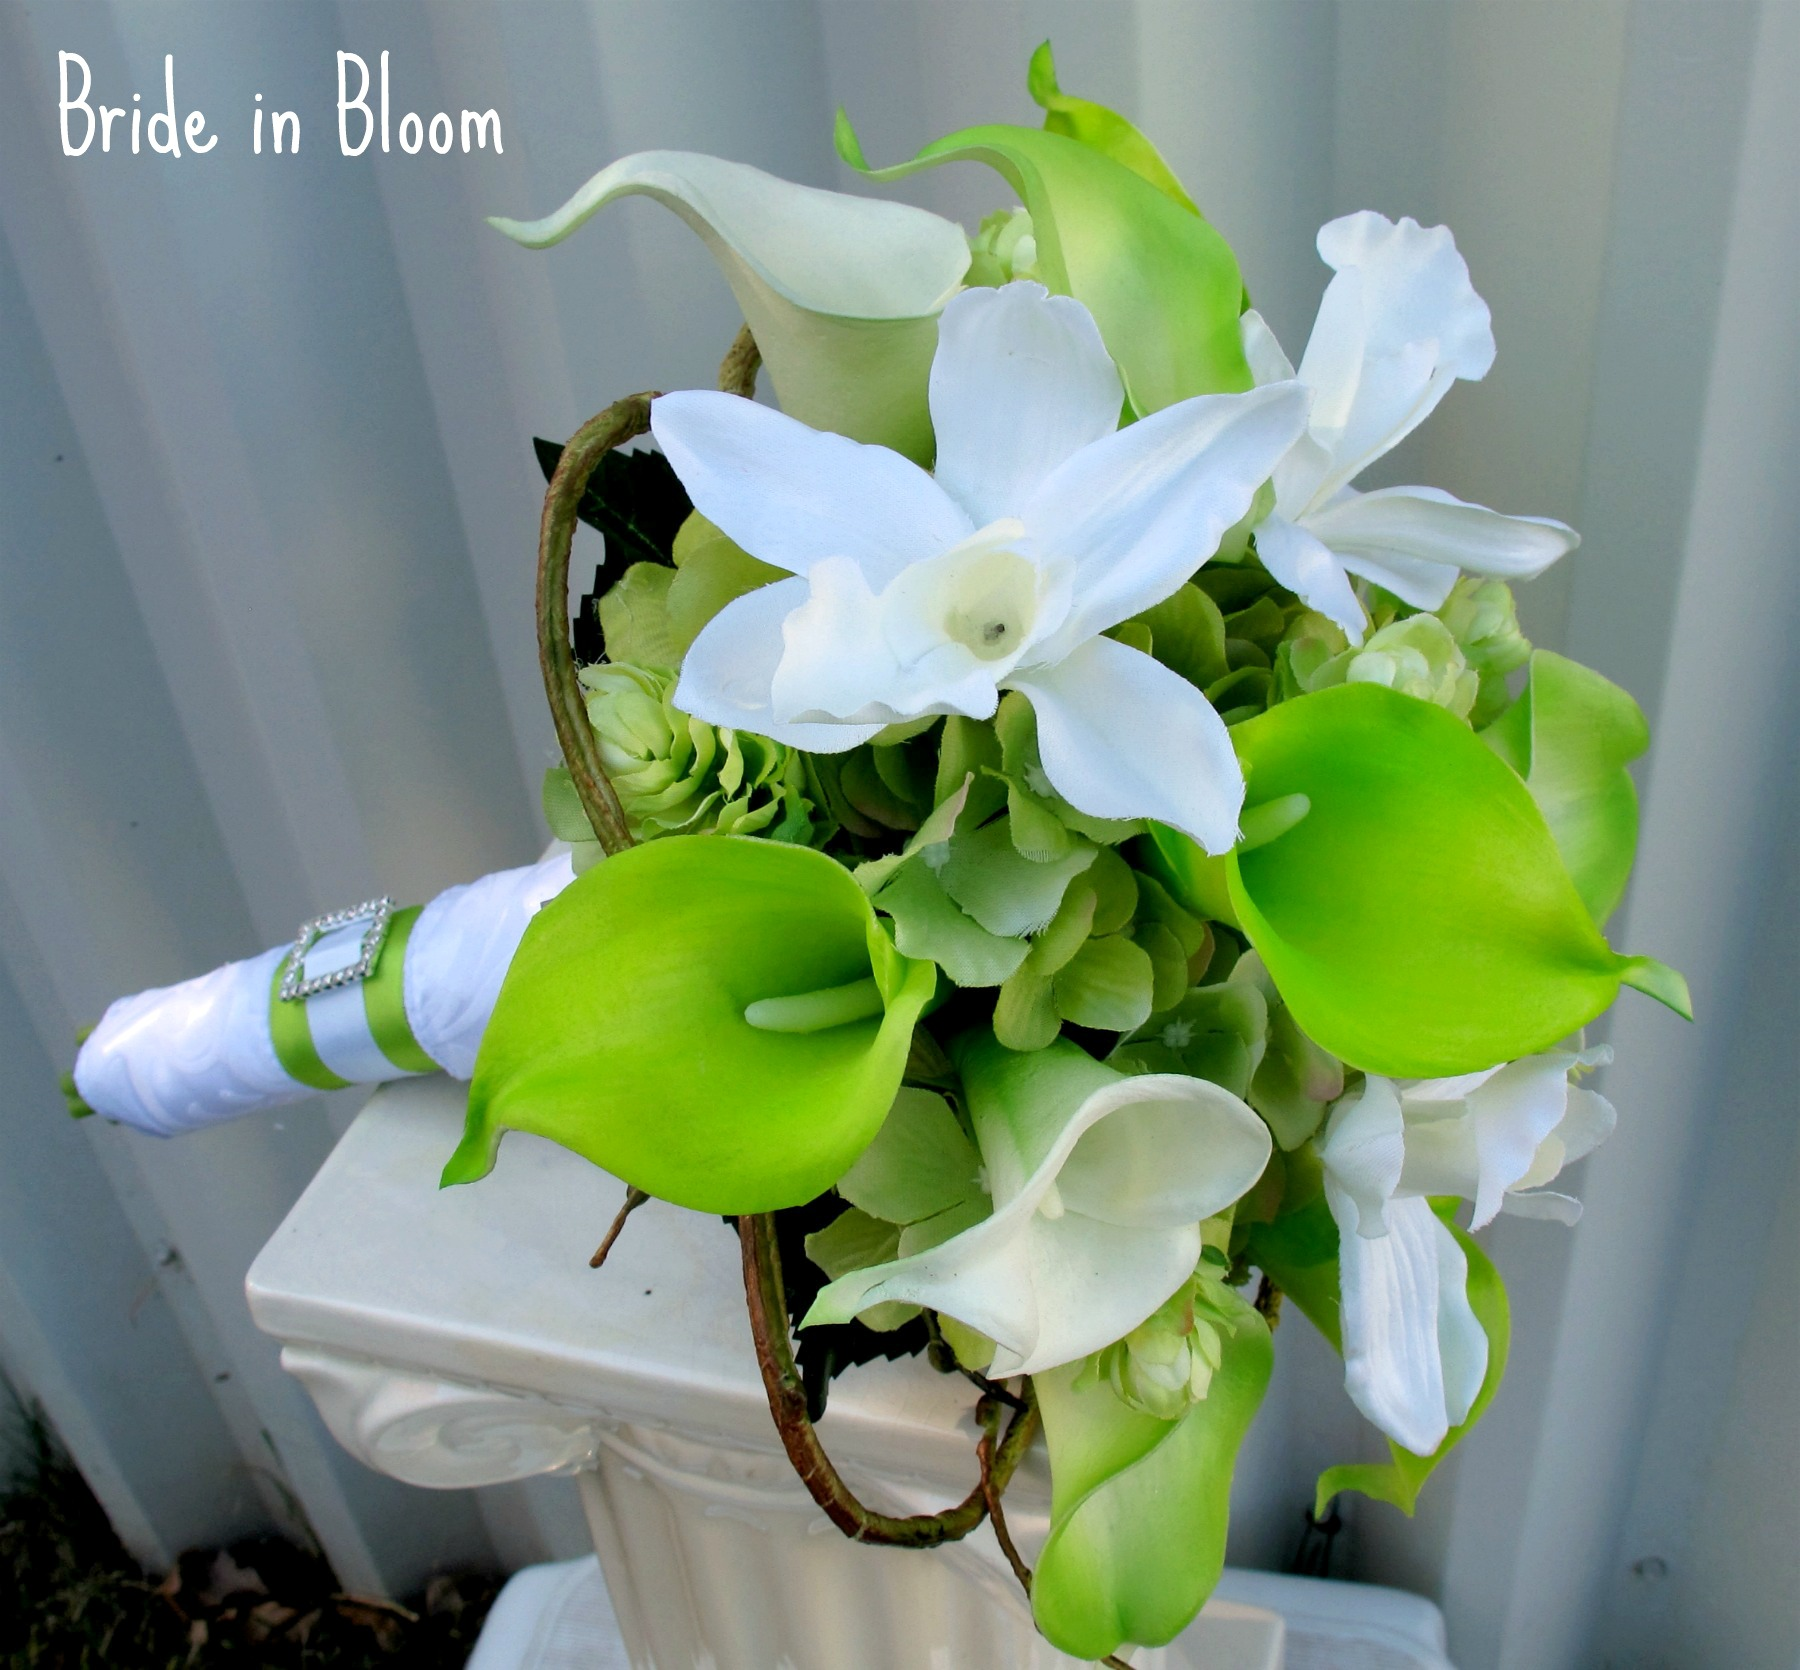 green lily love - photo #15